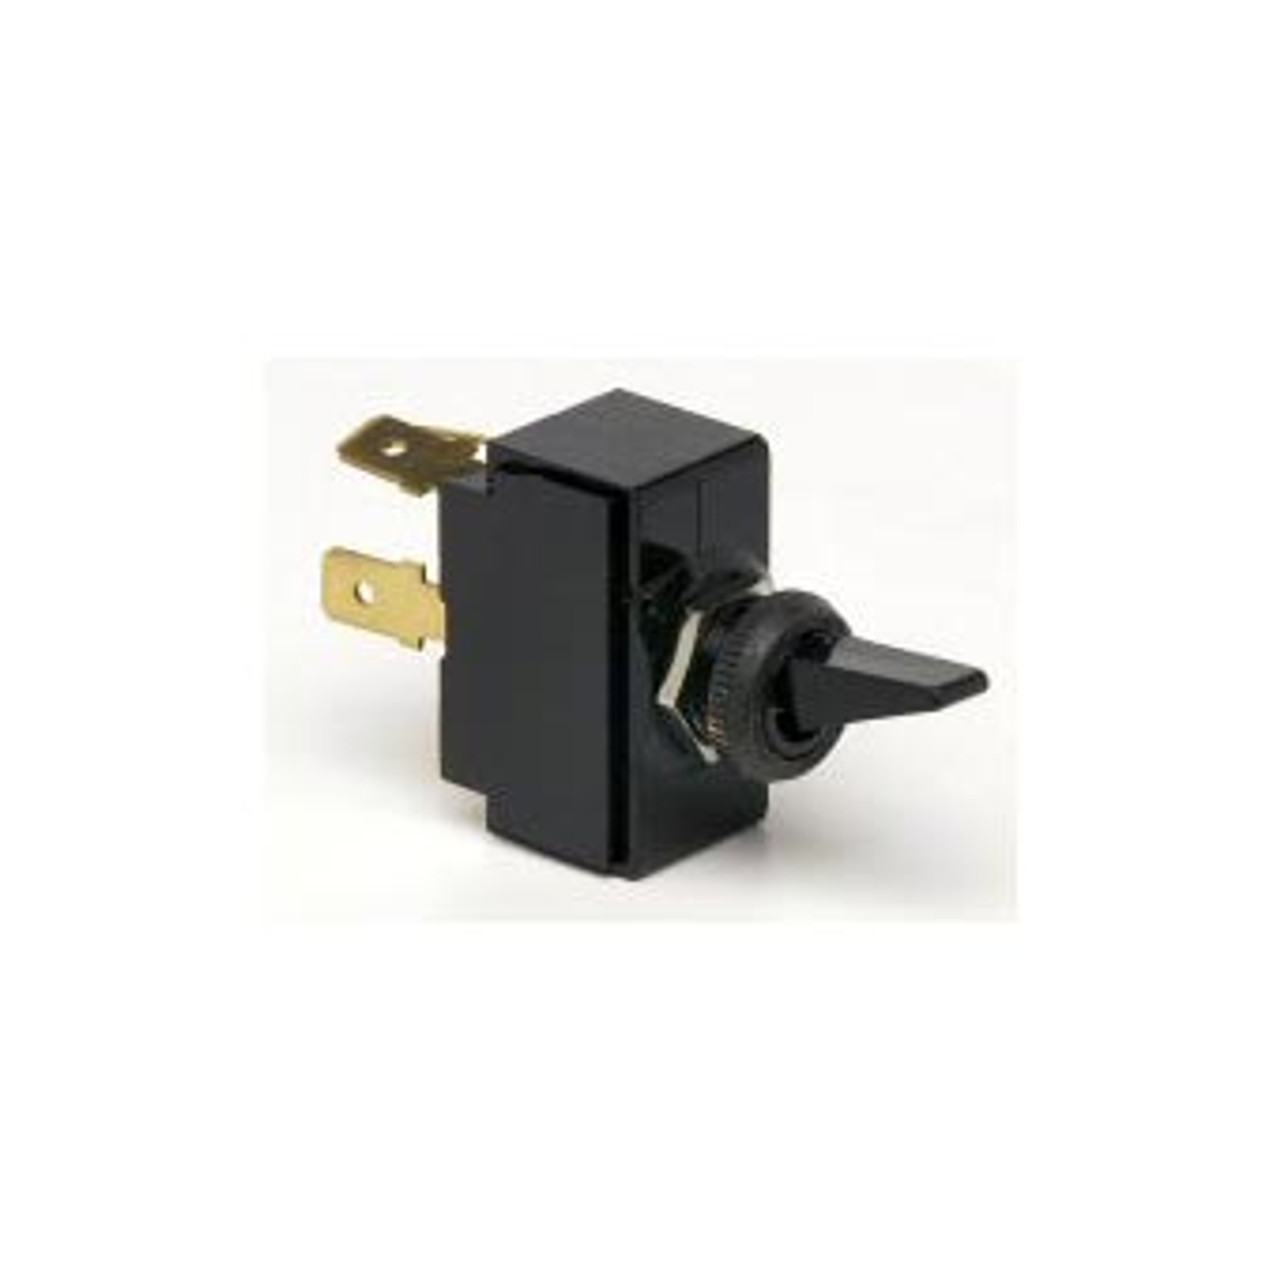 TOGGLE SWIT BLK ON-OFF 2B SPST 2 BLADE TERMINALS